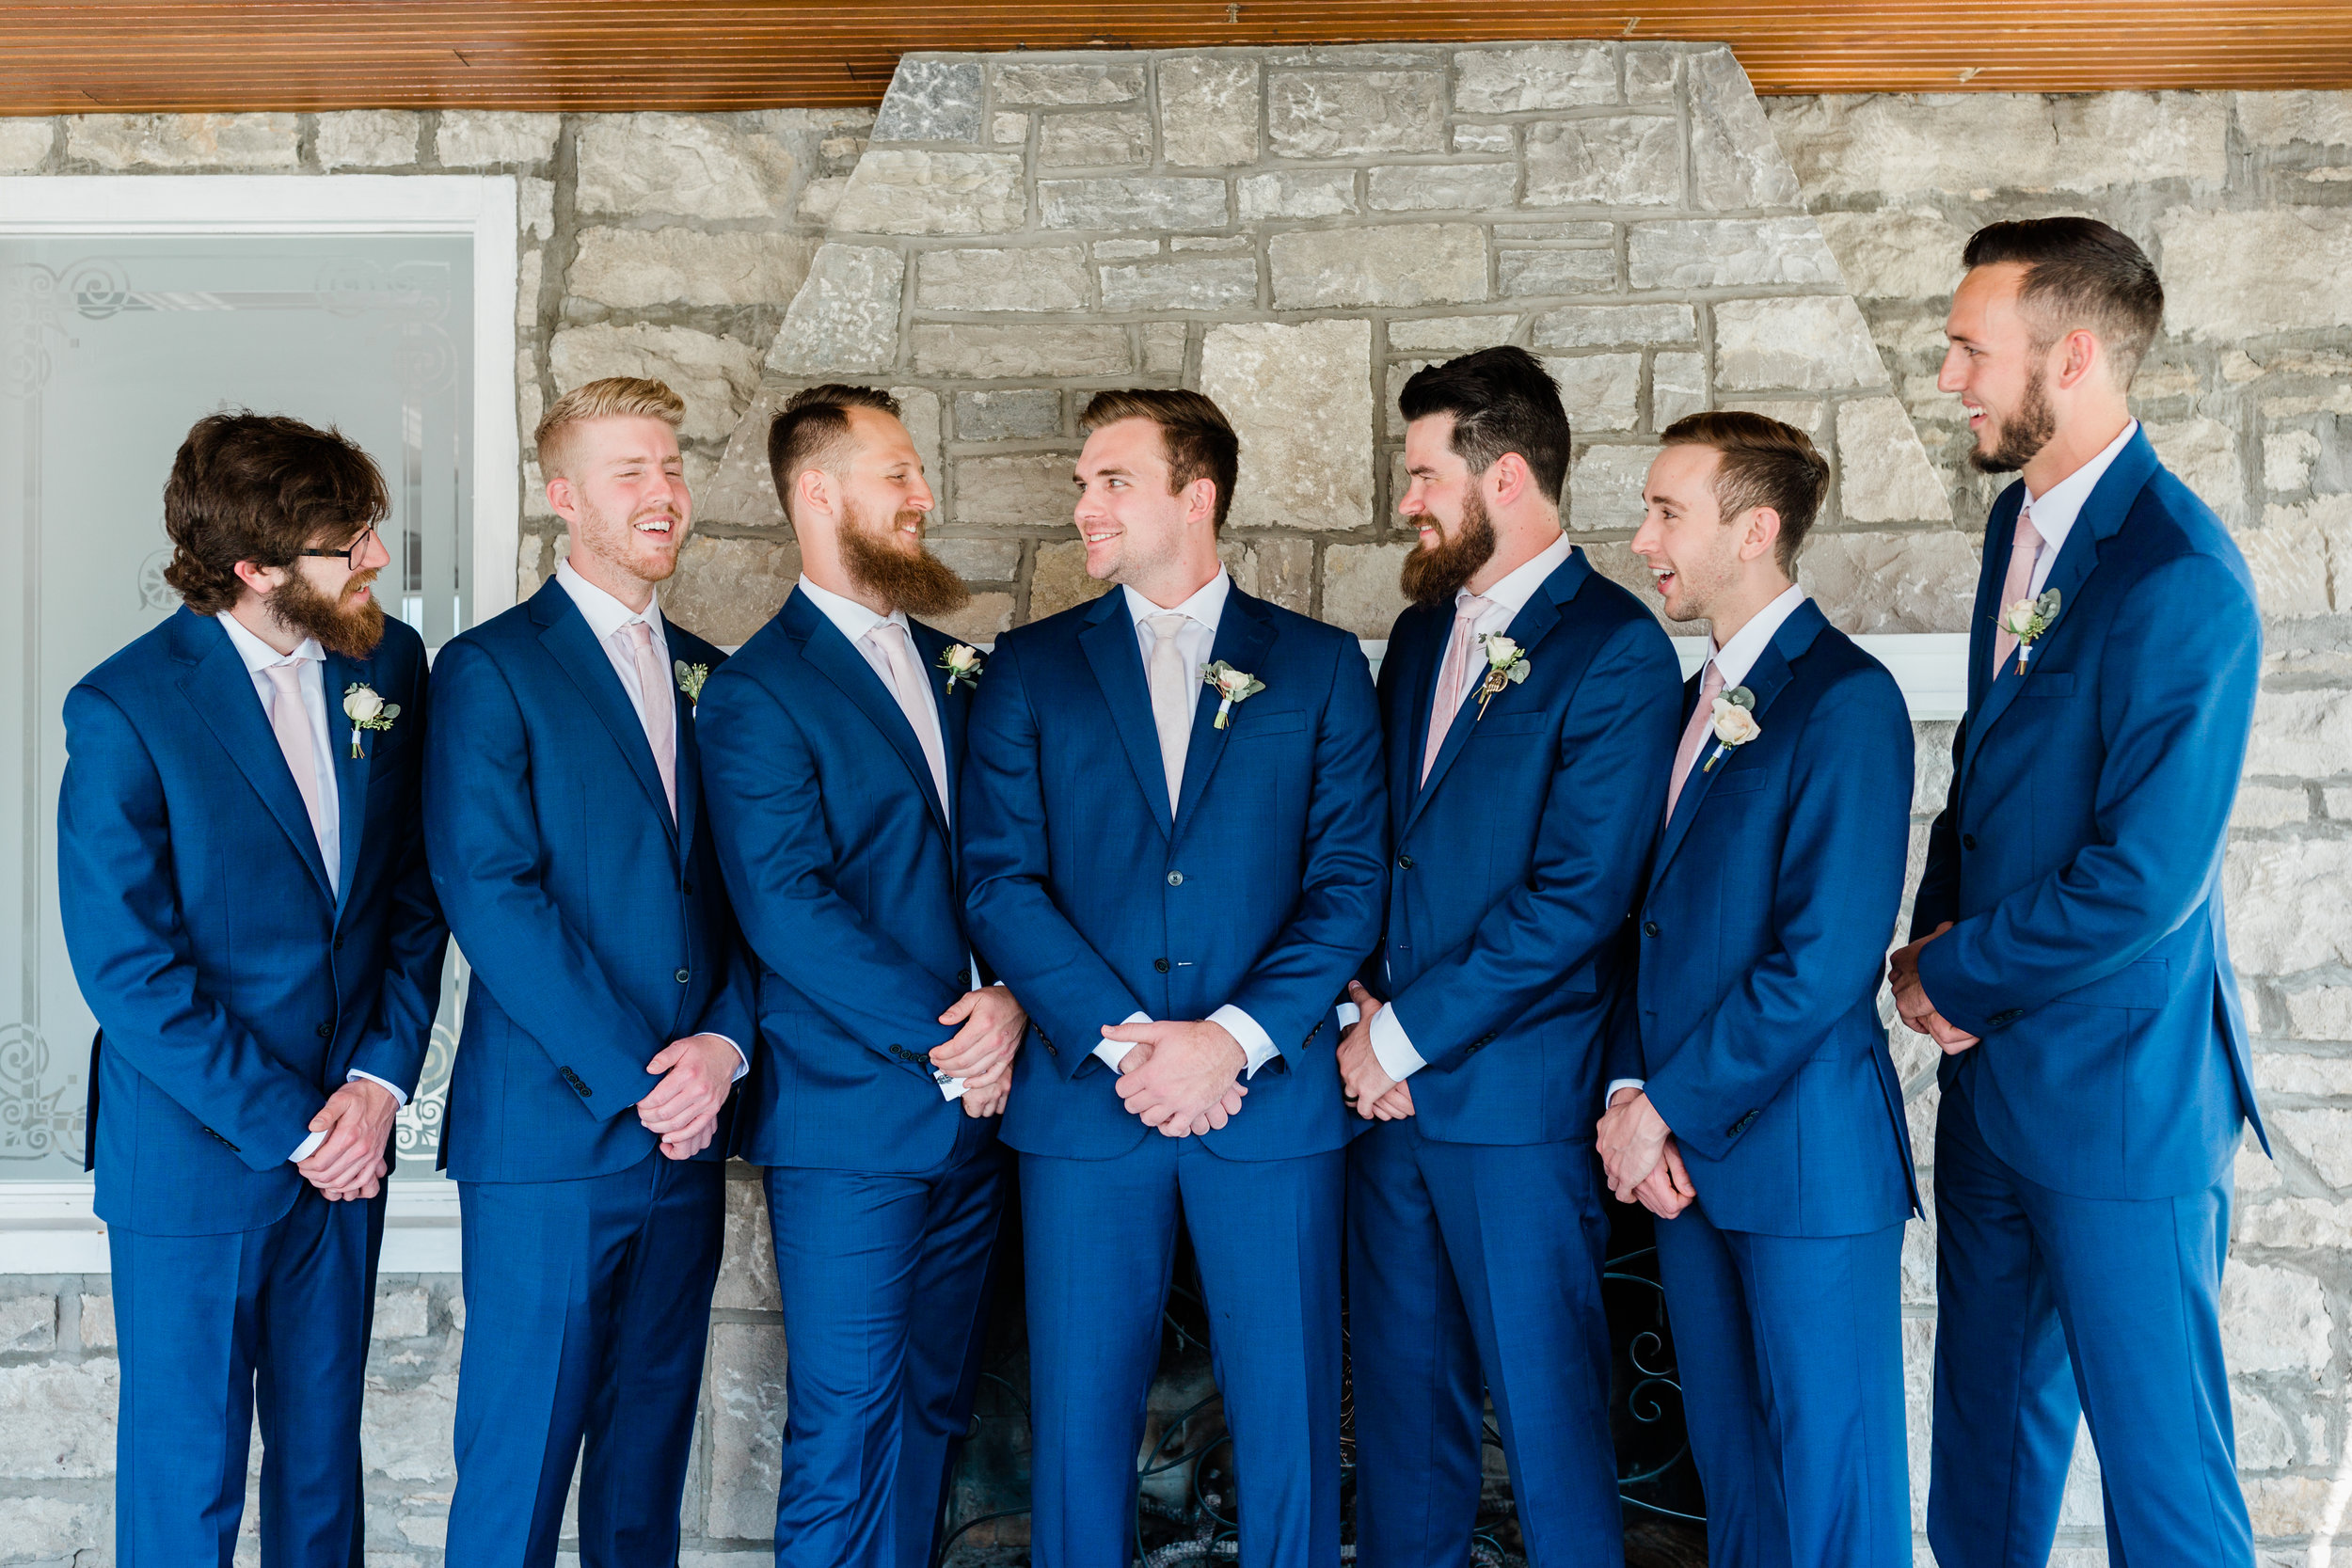 Dorothy_Louise_Photography_Amanda_Ryan_Stone_House_St_Charles_Wedding_Bridal_Party-179.jpg